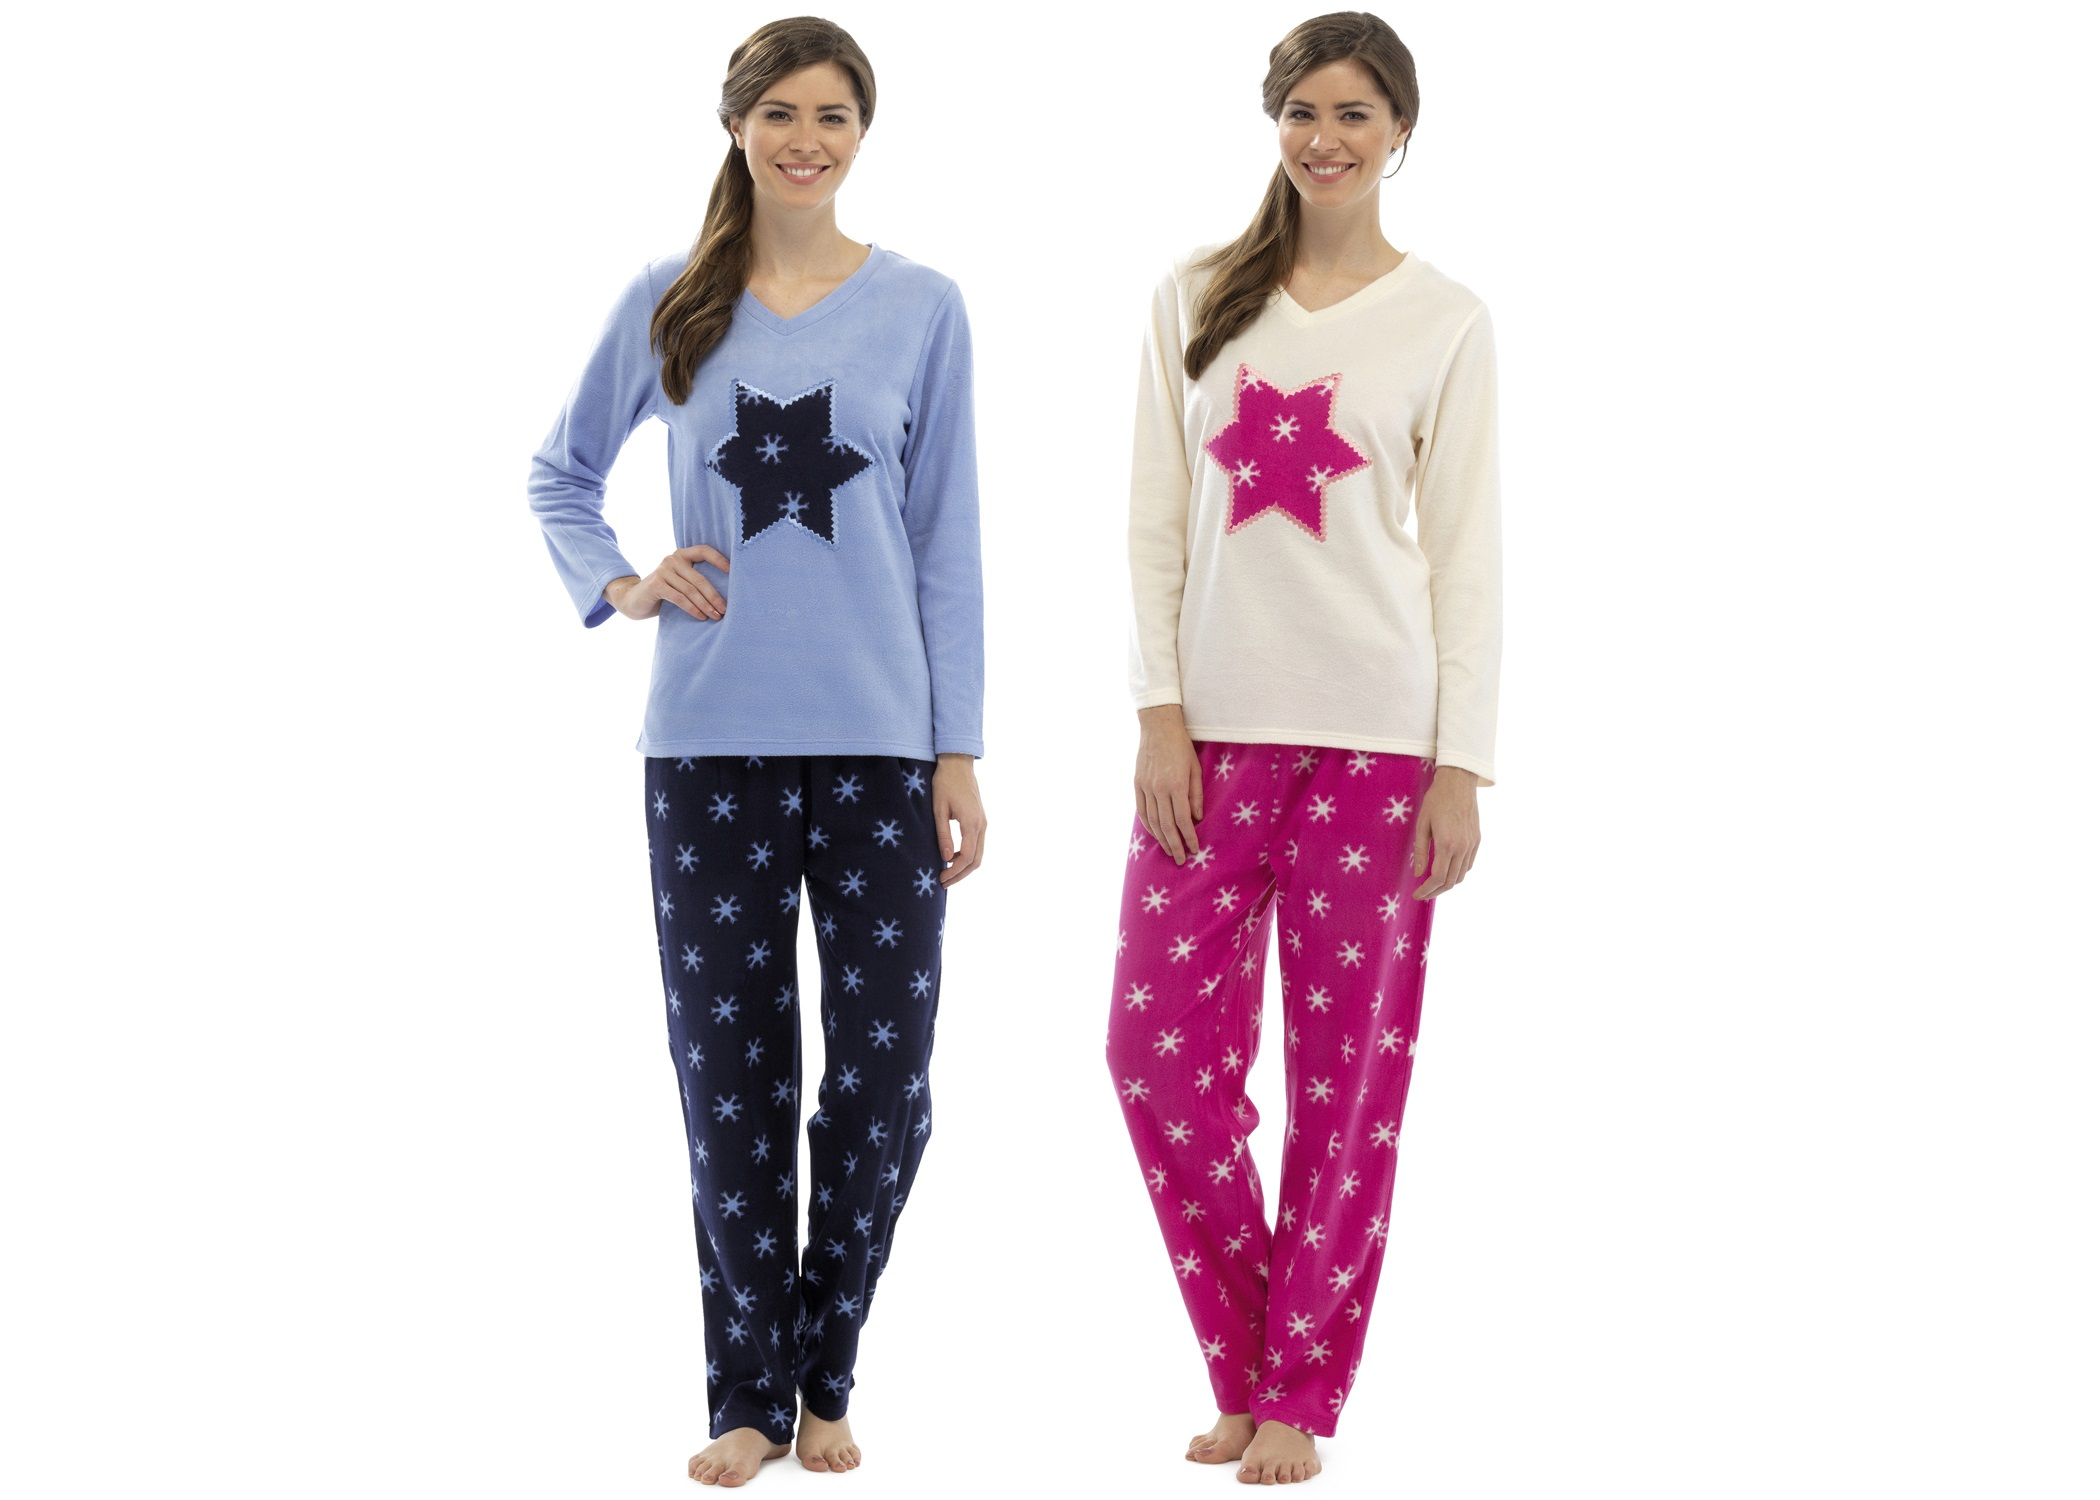 8209d82cb0a3 Womens Fleece Pyjamas Full Length Pjs Long Sleeve Lounge Set Ladies ...